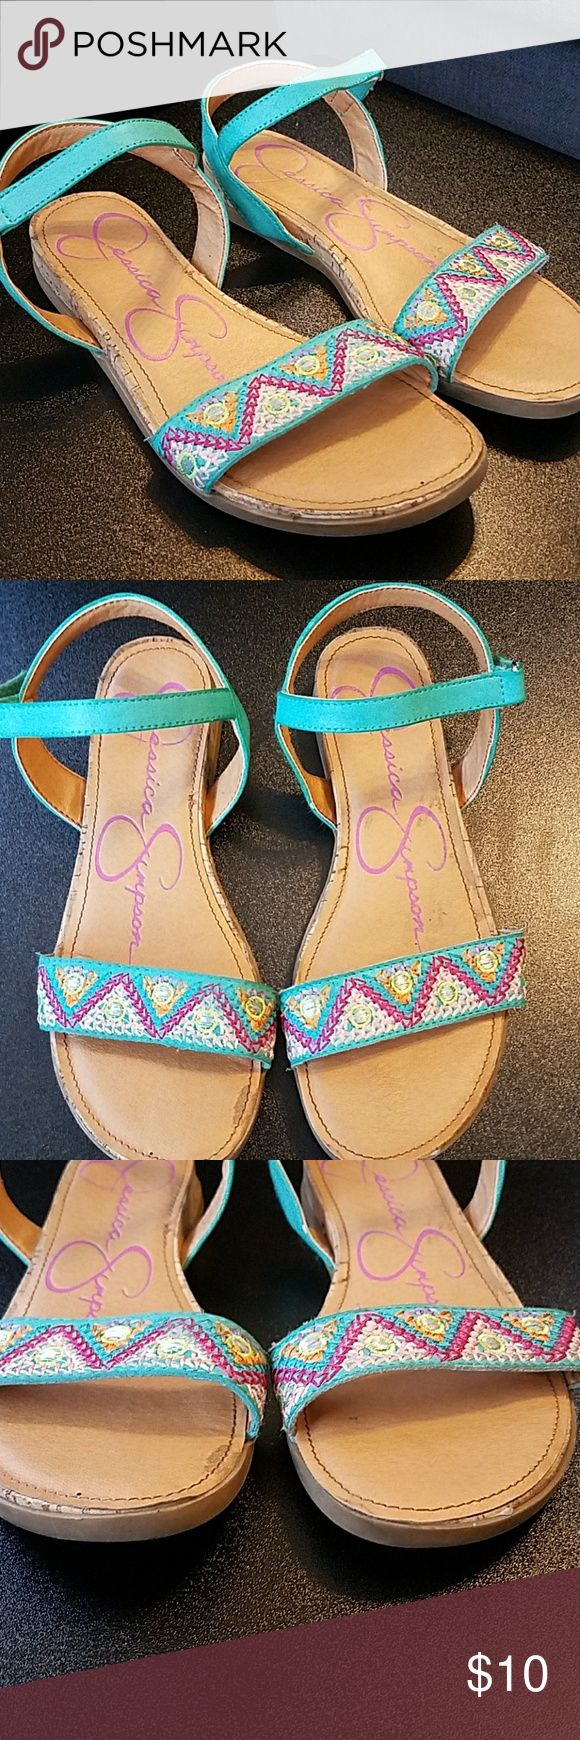 Jessica Simpson Sandals Size 4 Adorable! Bright Colored Tribal Strap with Leather Velcro Strap at Ankle. Great Condition just some dirty spots. Still for sale at Nordstrom for $40 Jessica Simpson Shoes